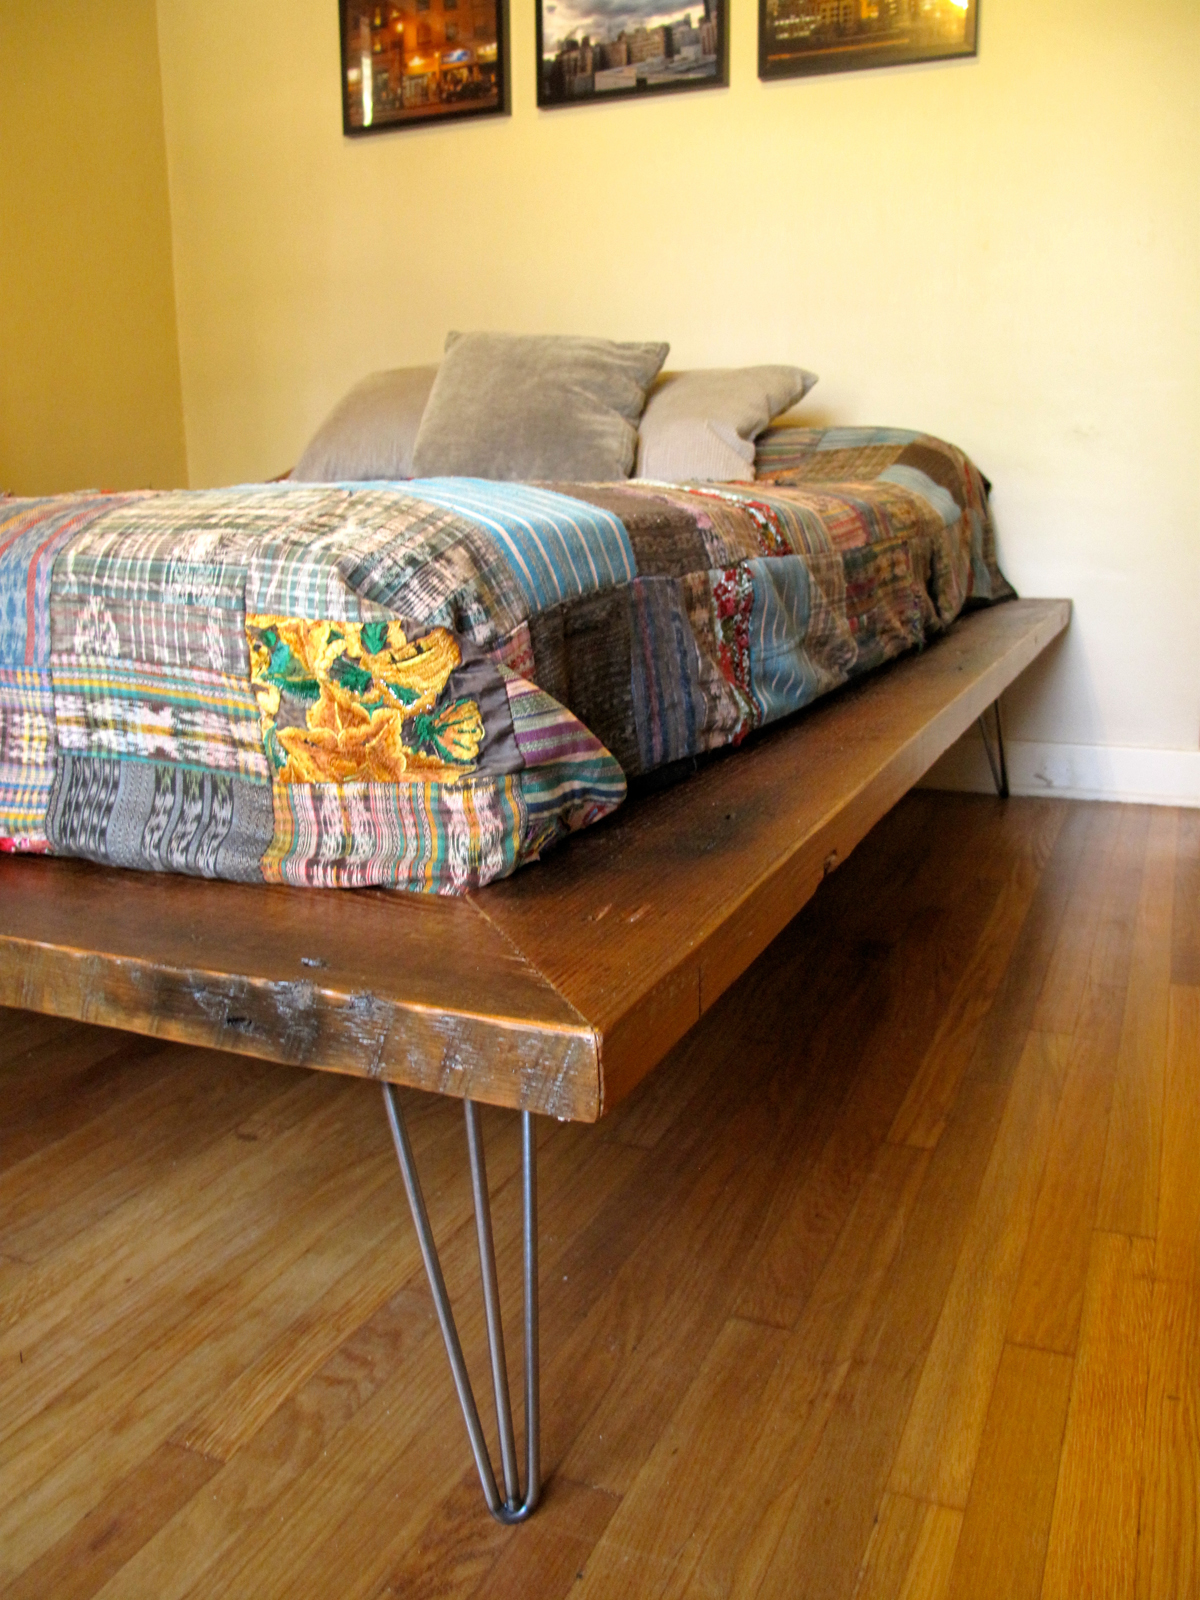 Arbor Exchange | Reclaimed Wood Furniture: Platform Bed ...